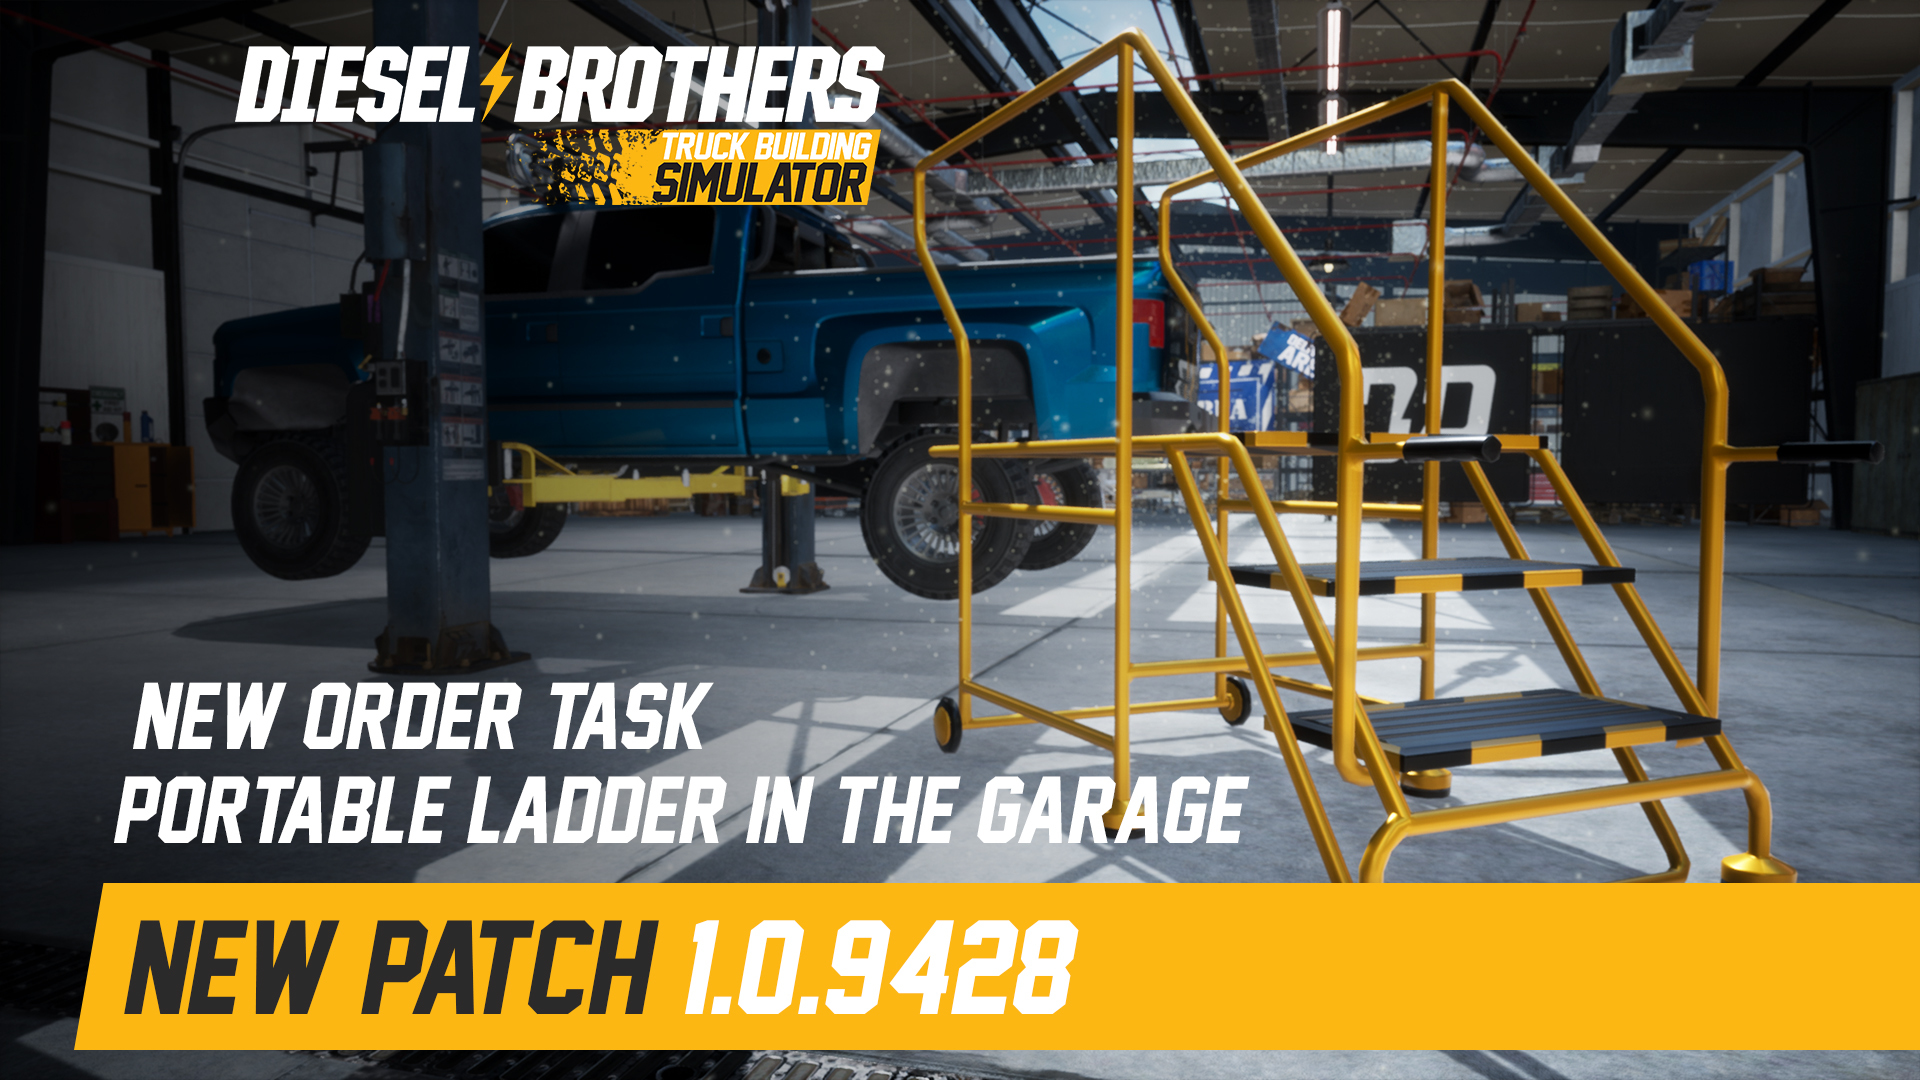 Diesel Brothers: Truck Building Simulator update for May 23, 2019